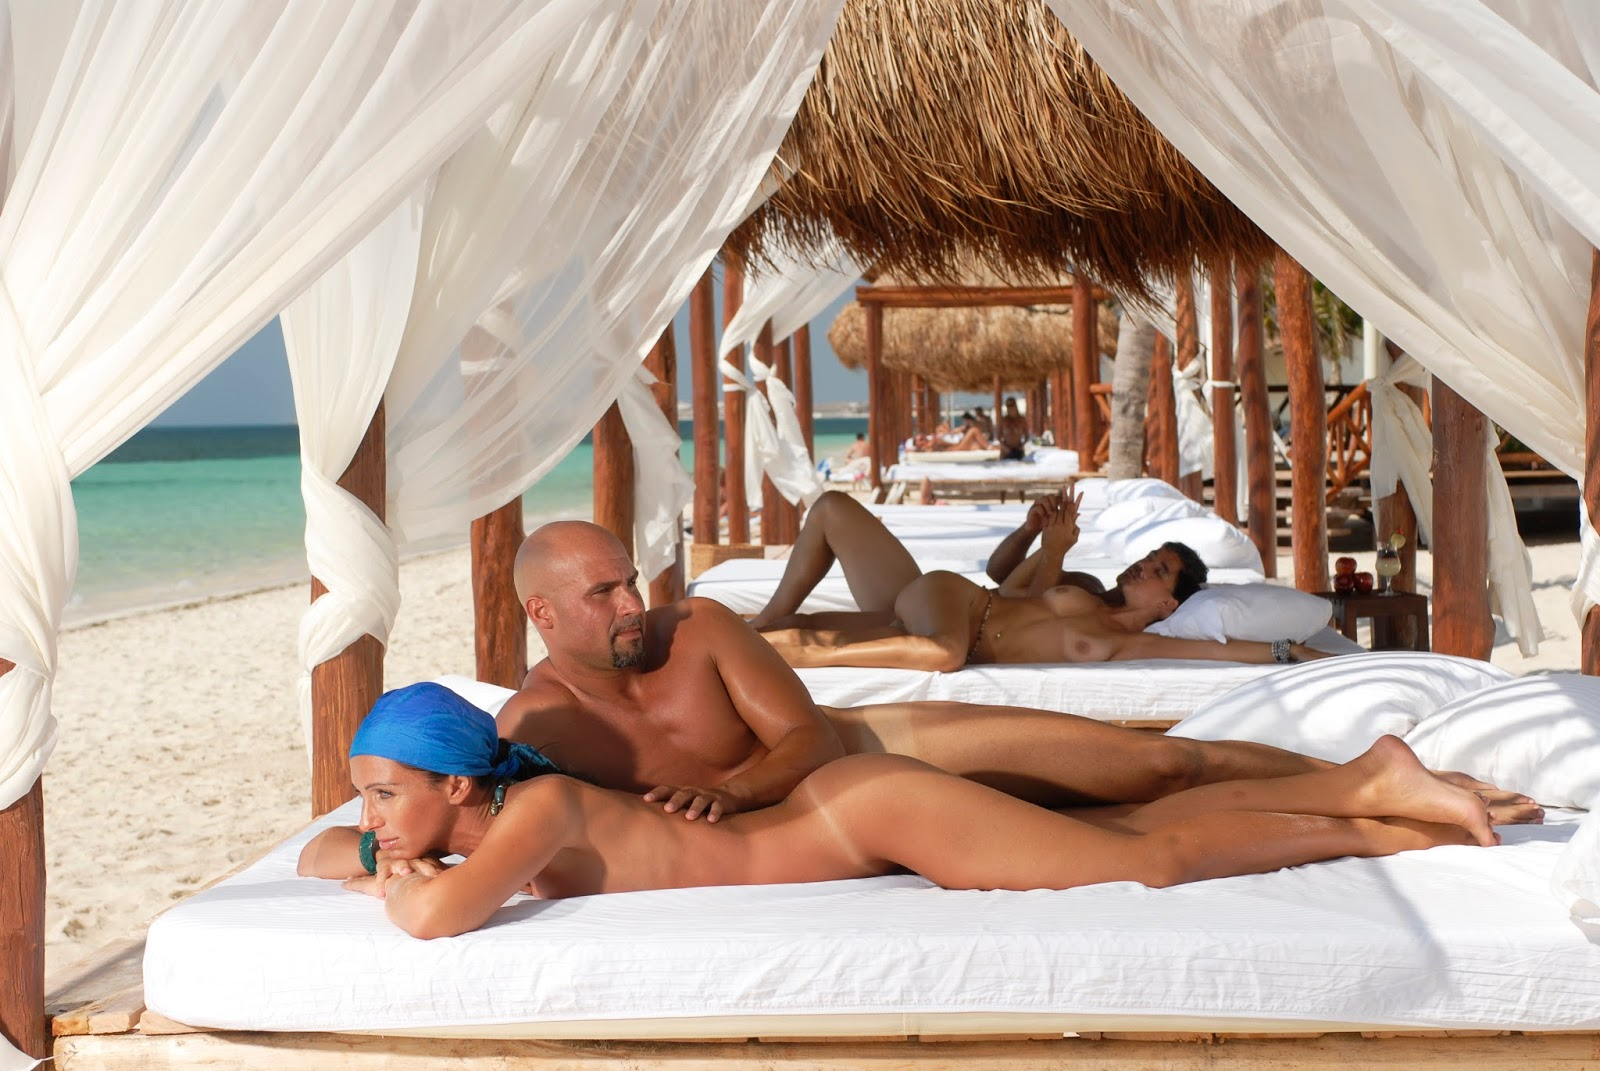 Clearly Swinger travel mexico congratulate